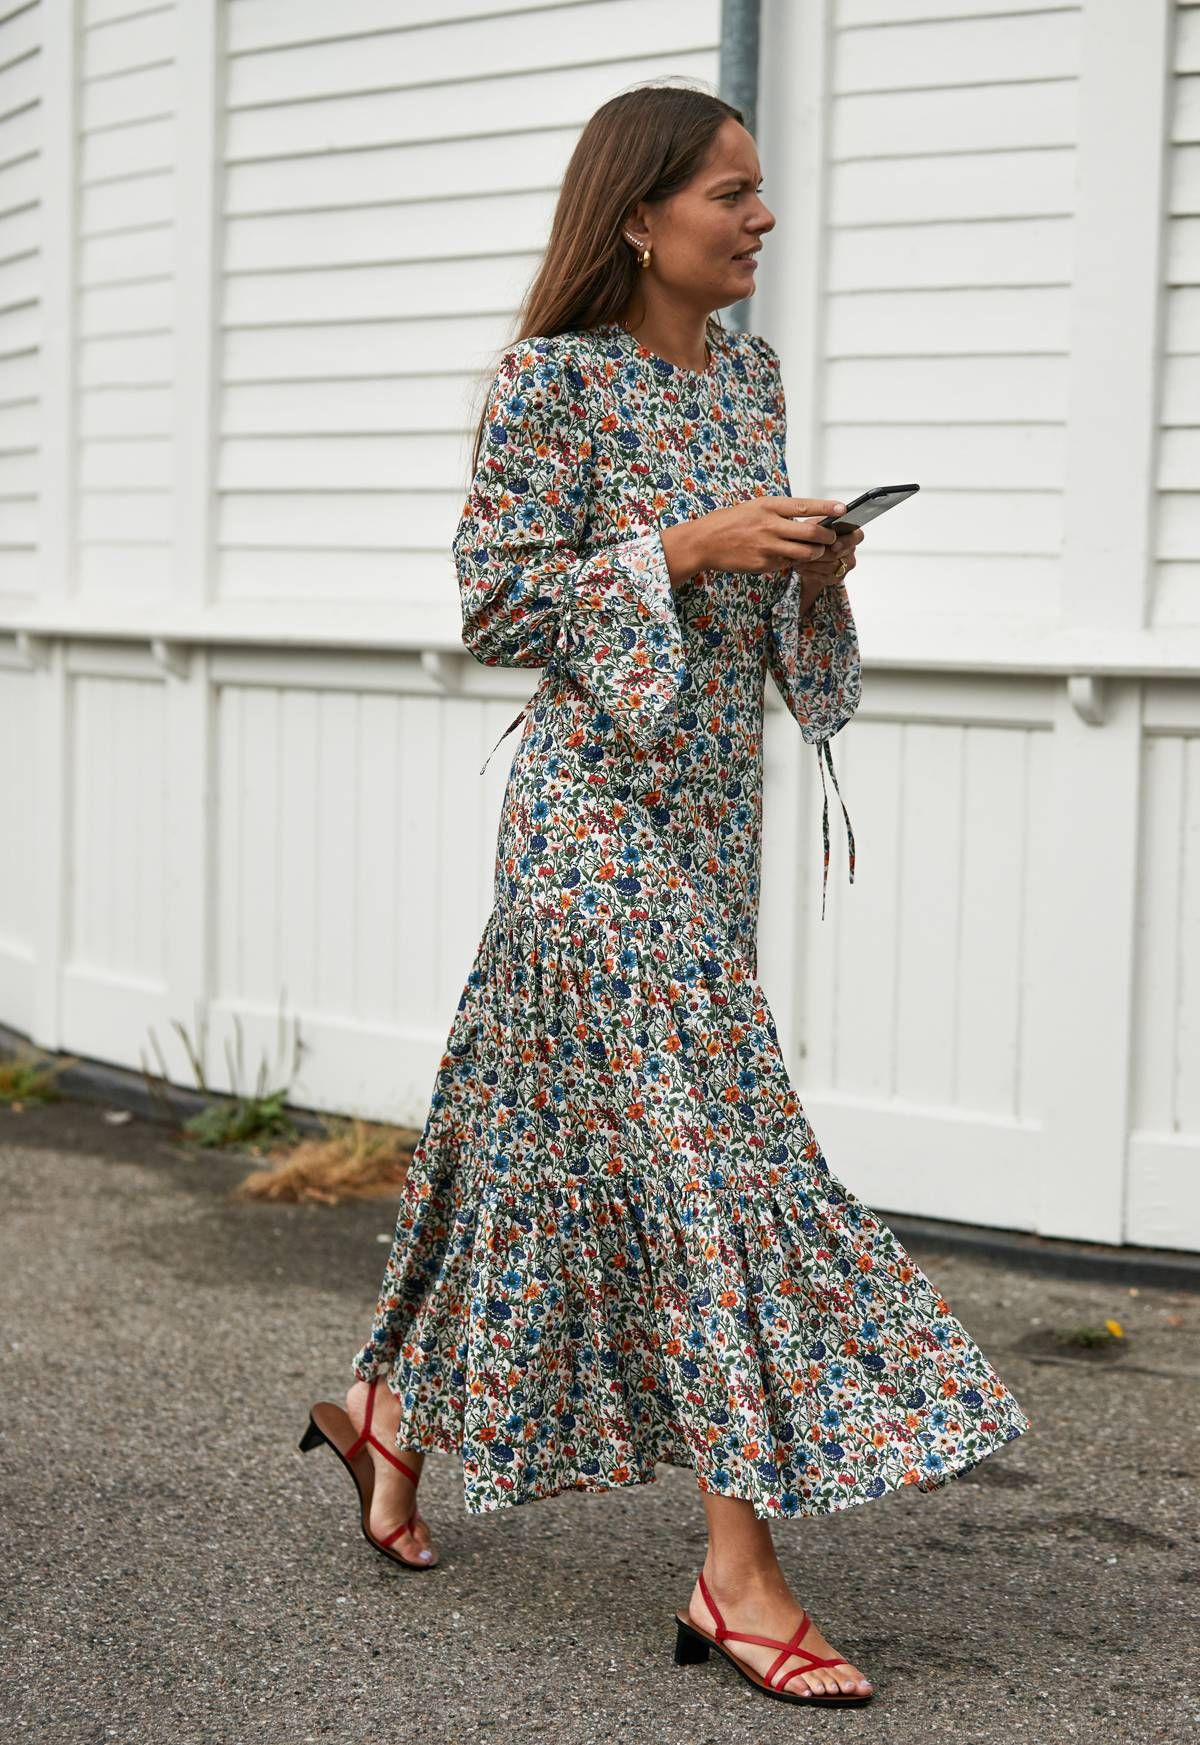 These Emerging Trends Will Dictate What's in Style for the Next 6 Months